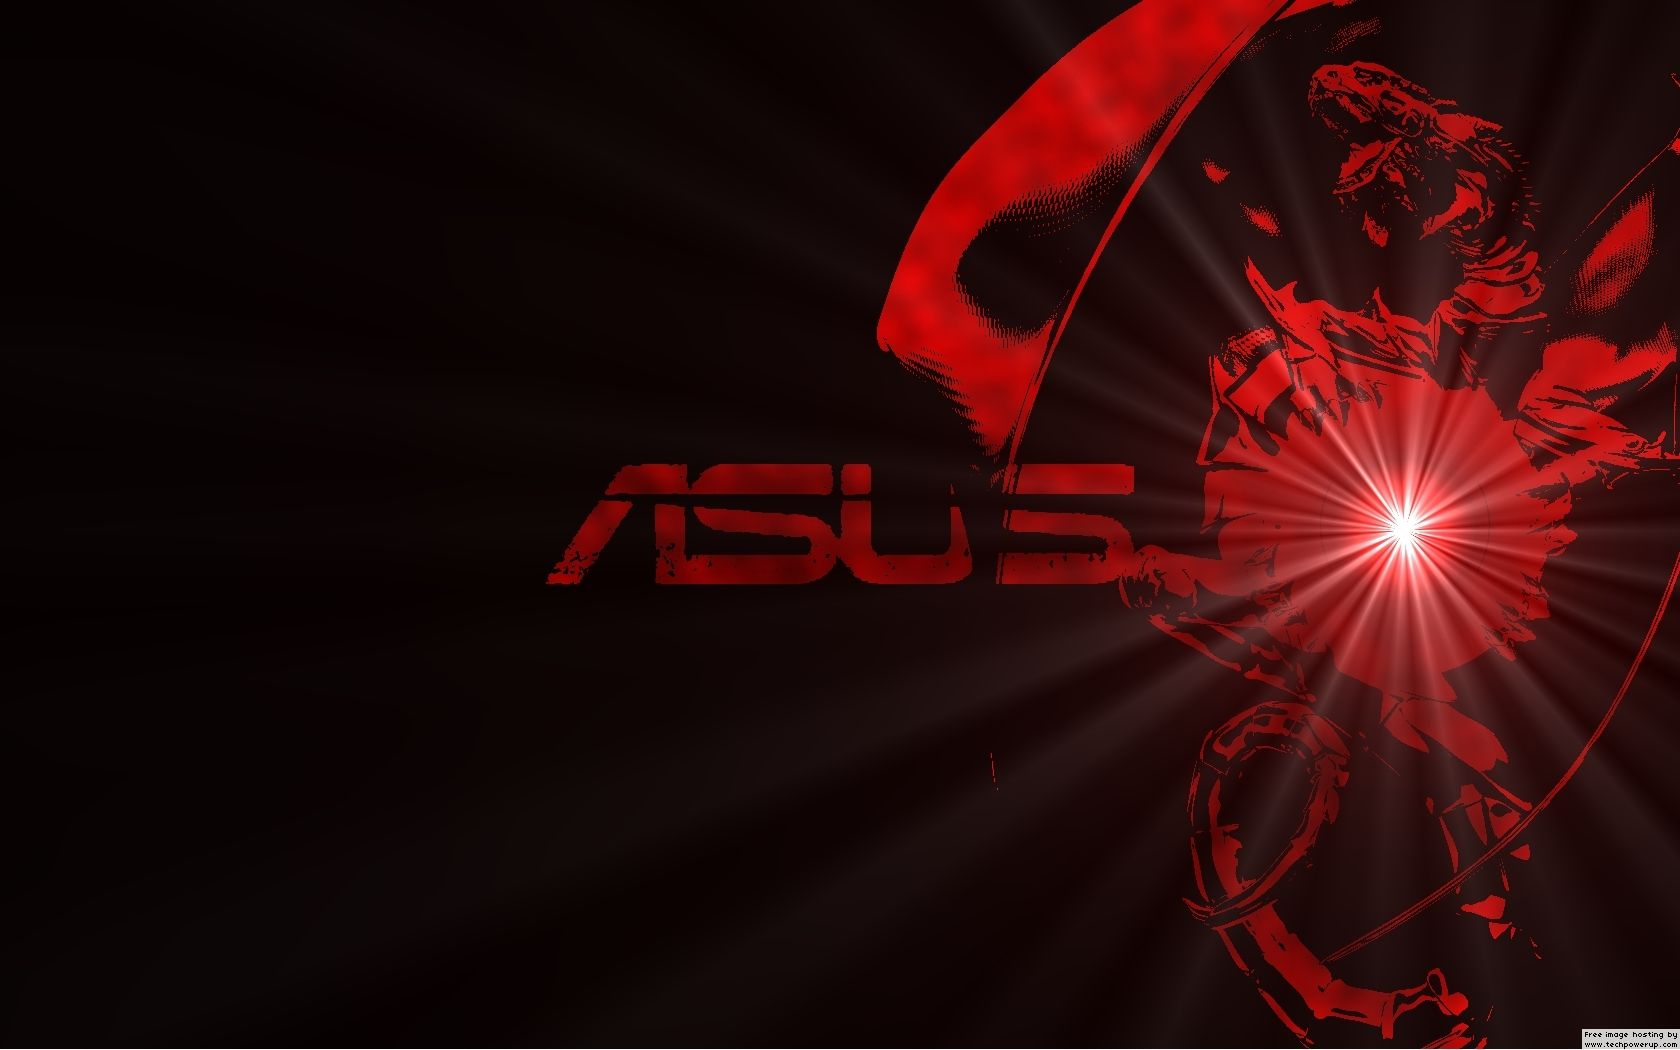 Asus Mobile Wallpaper: New Mobiles: Asus Wallpapers And Motherboard